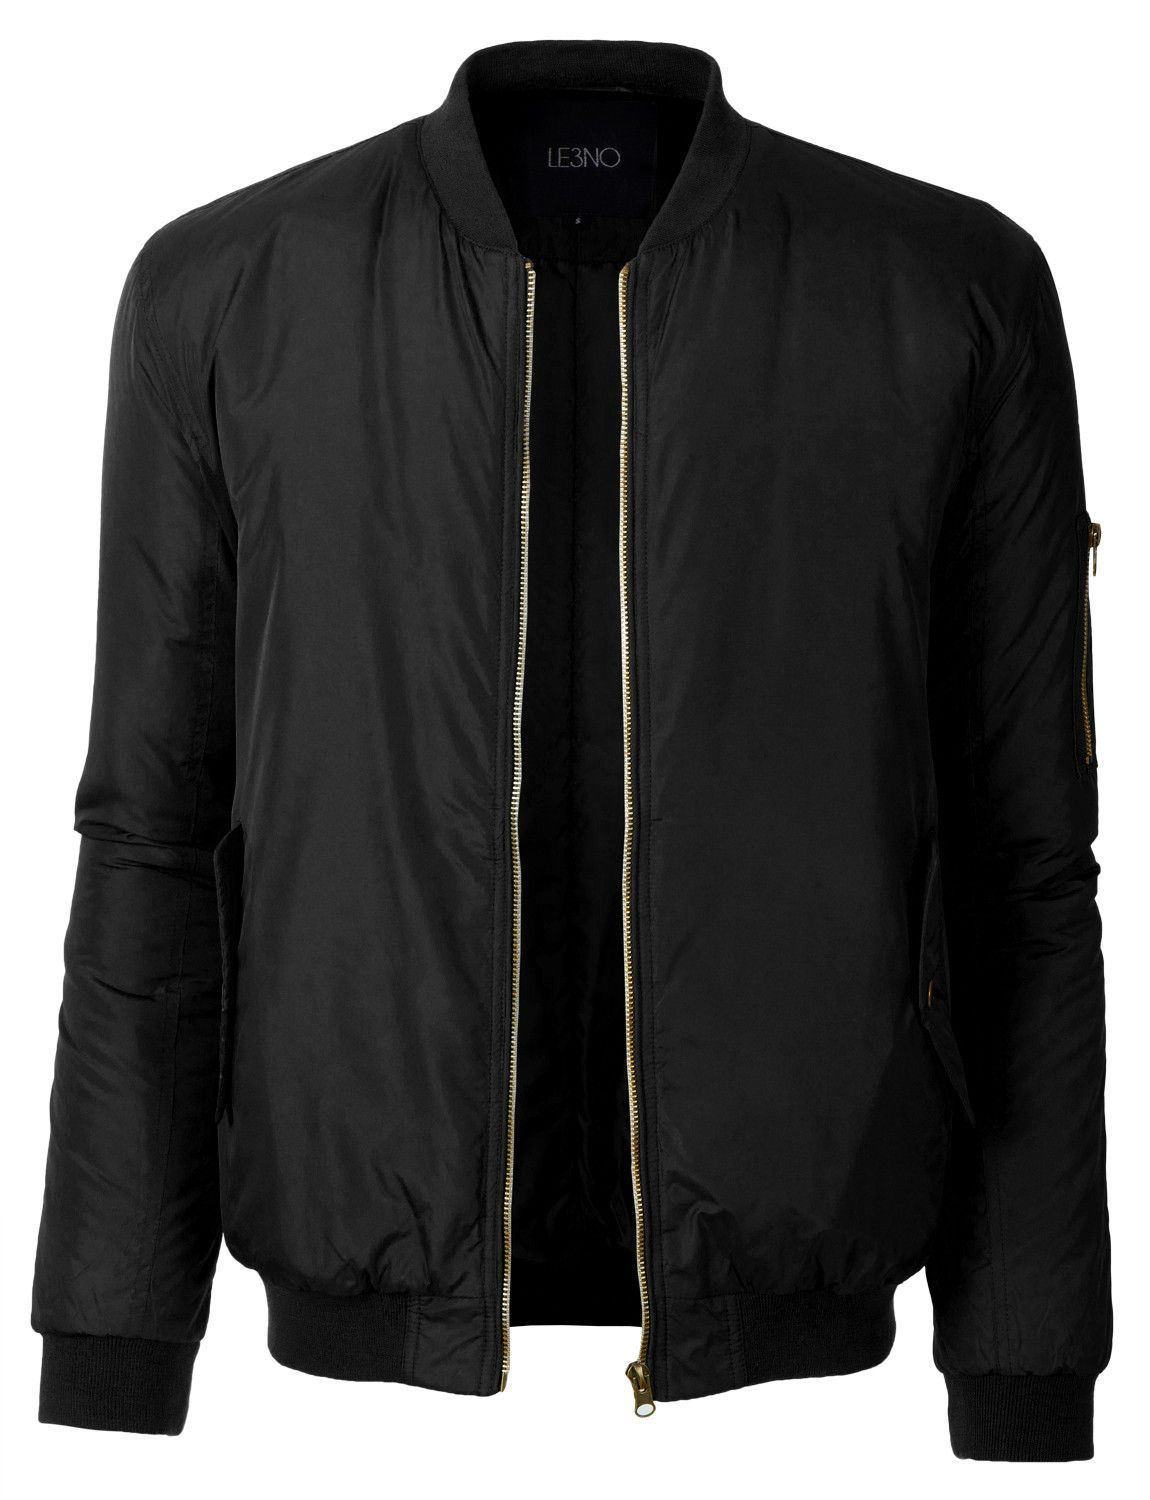 98b42664785 This classic fully lined zip up bomber jacket with pockets is the essential  piece you must add to your wardrobe. Sleek